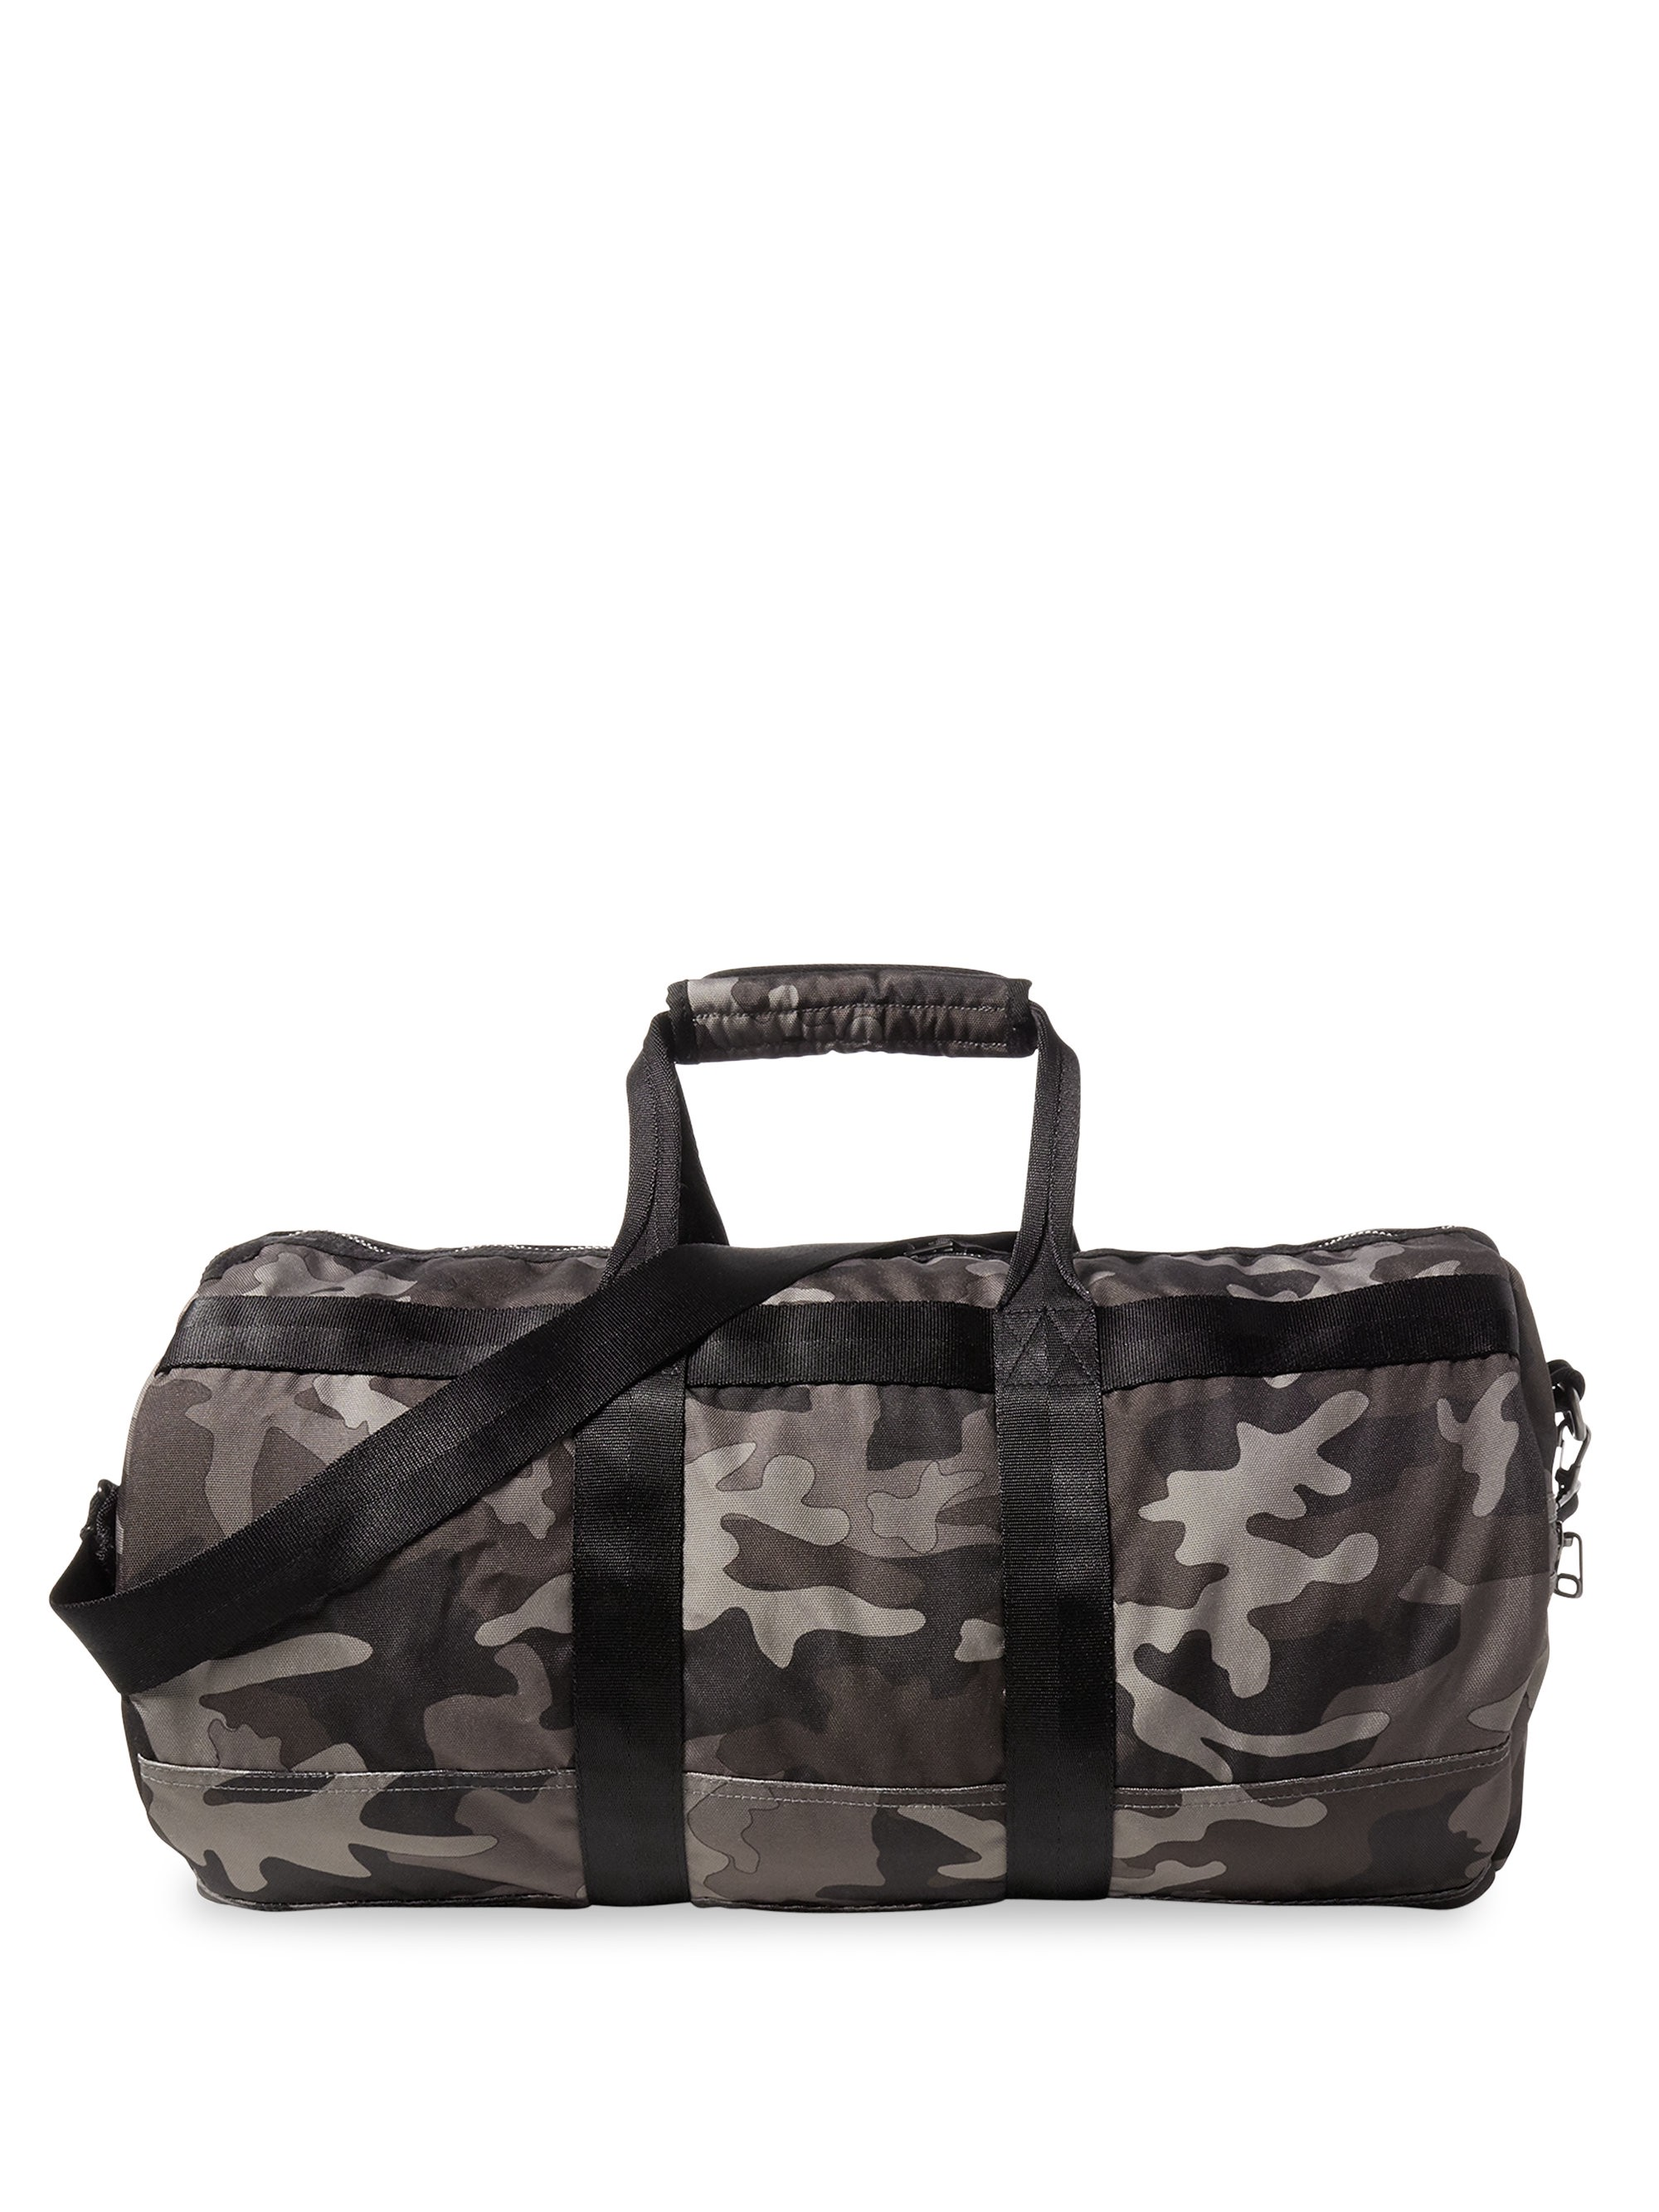 Ralph Lauren Camouflage Printed Military Duffel Bag - Black One Size ... 0450524b3fa48